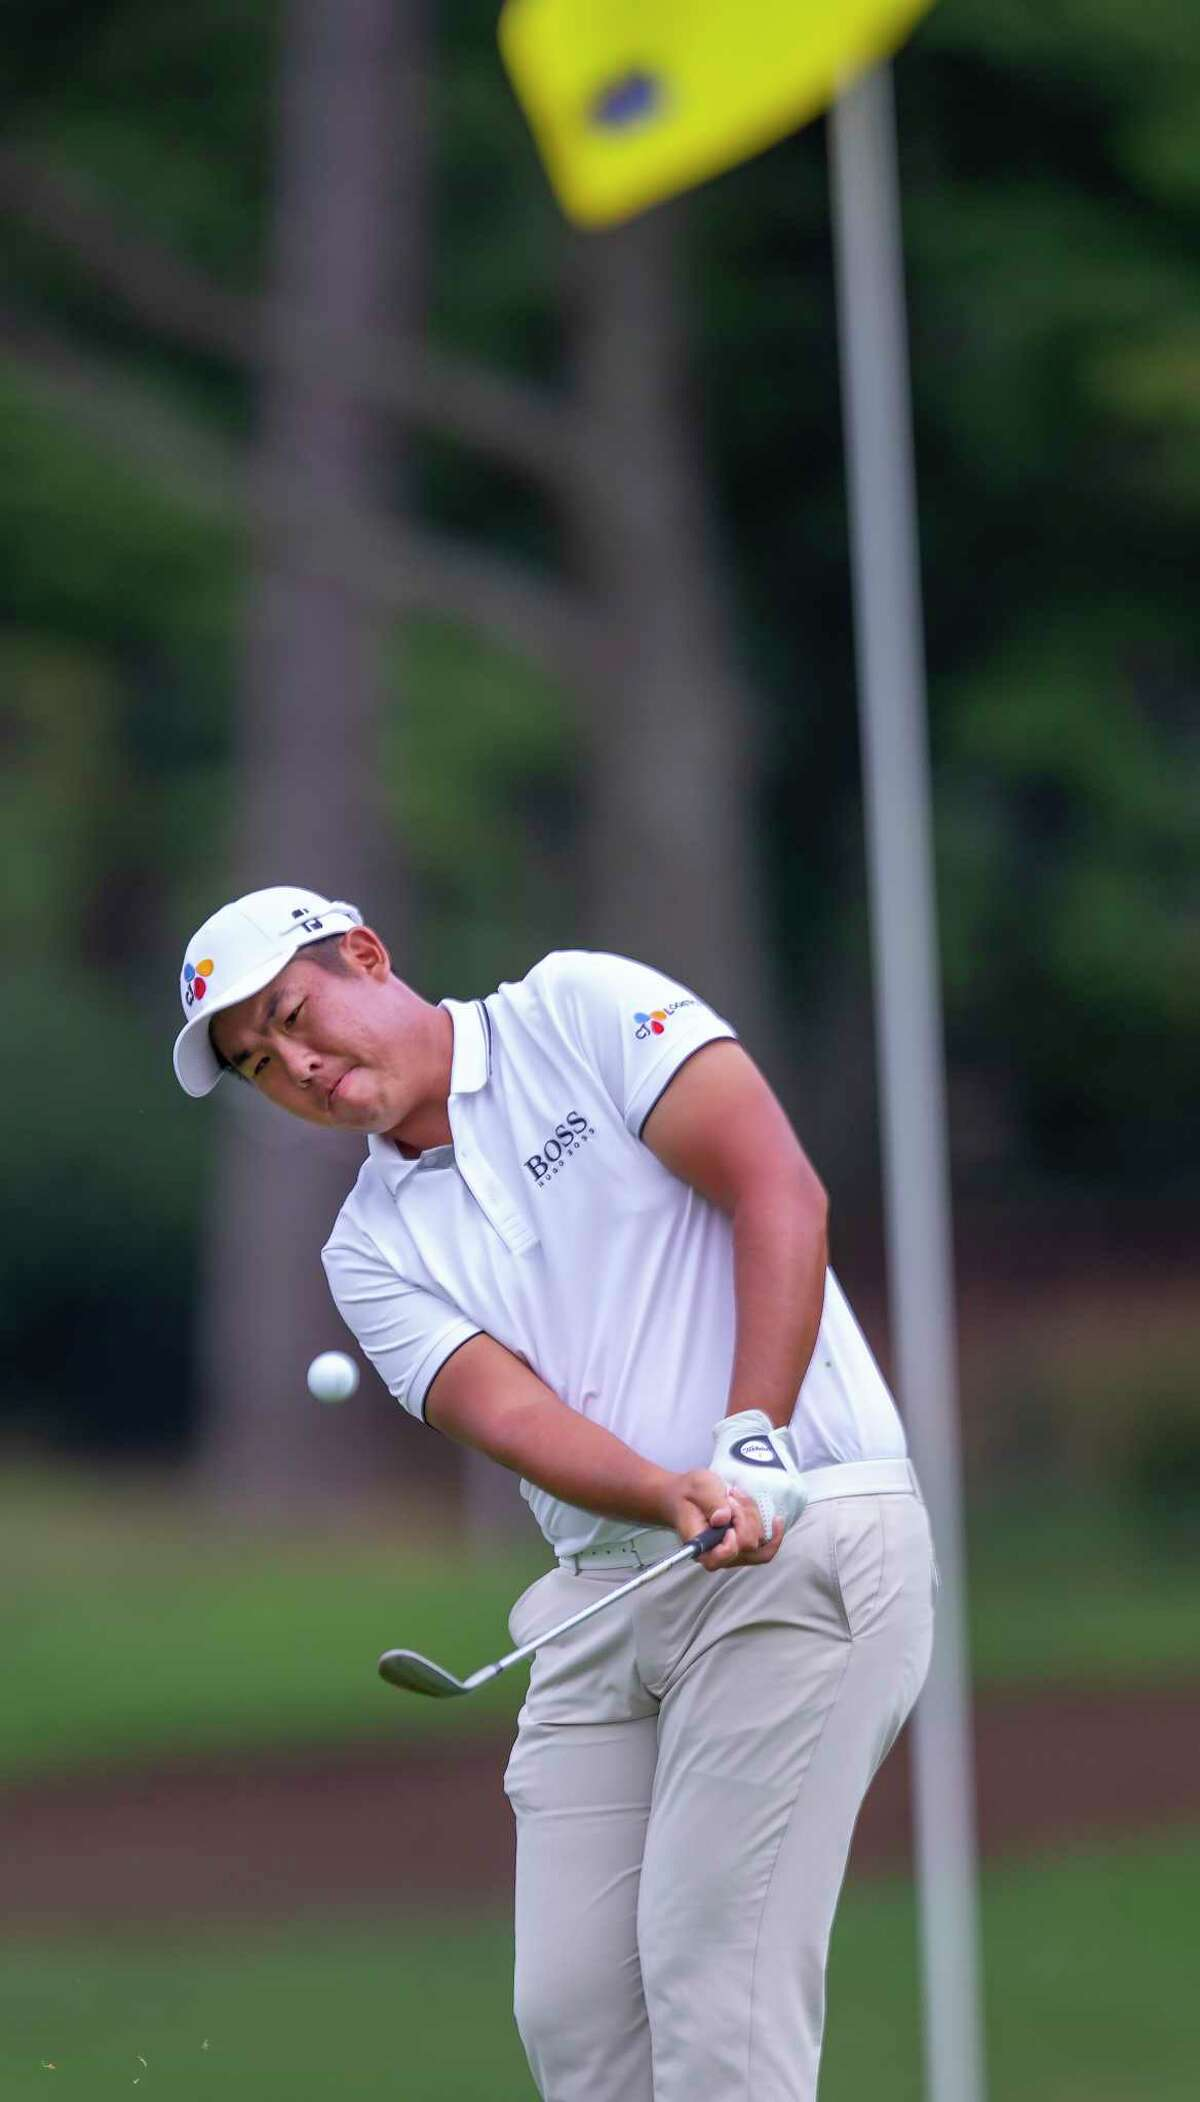 Byeong Hun An chips onto the ninth green during the second round of the Wyndham Championship golf tournament at Sedgefield Country Club in Greensboro, N.C., Friday, Aug. 2, 2019. (H. Scott Hoffmann/News & Record via AP)